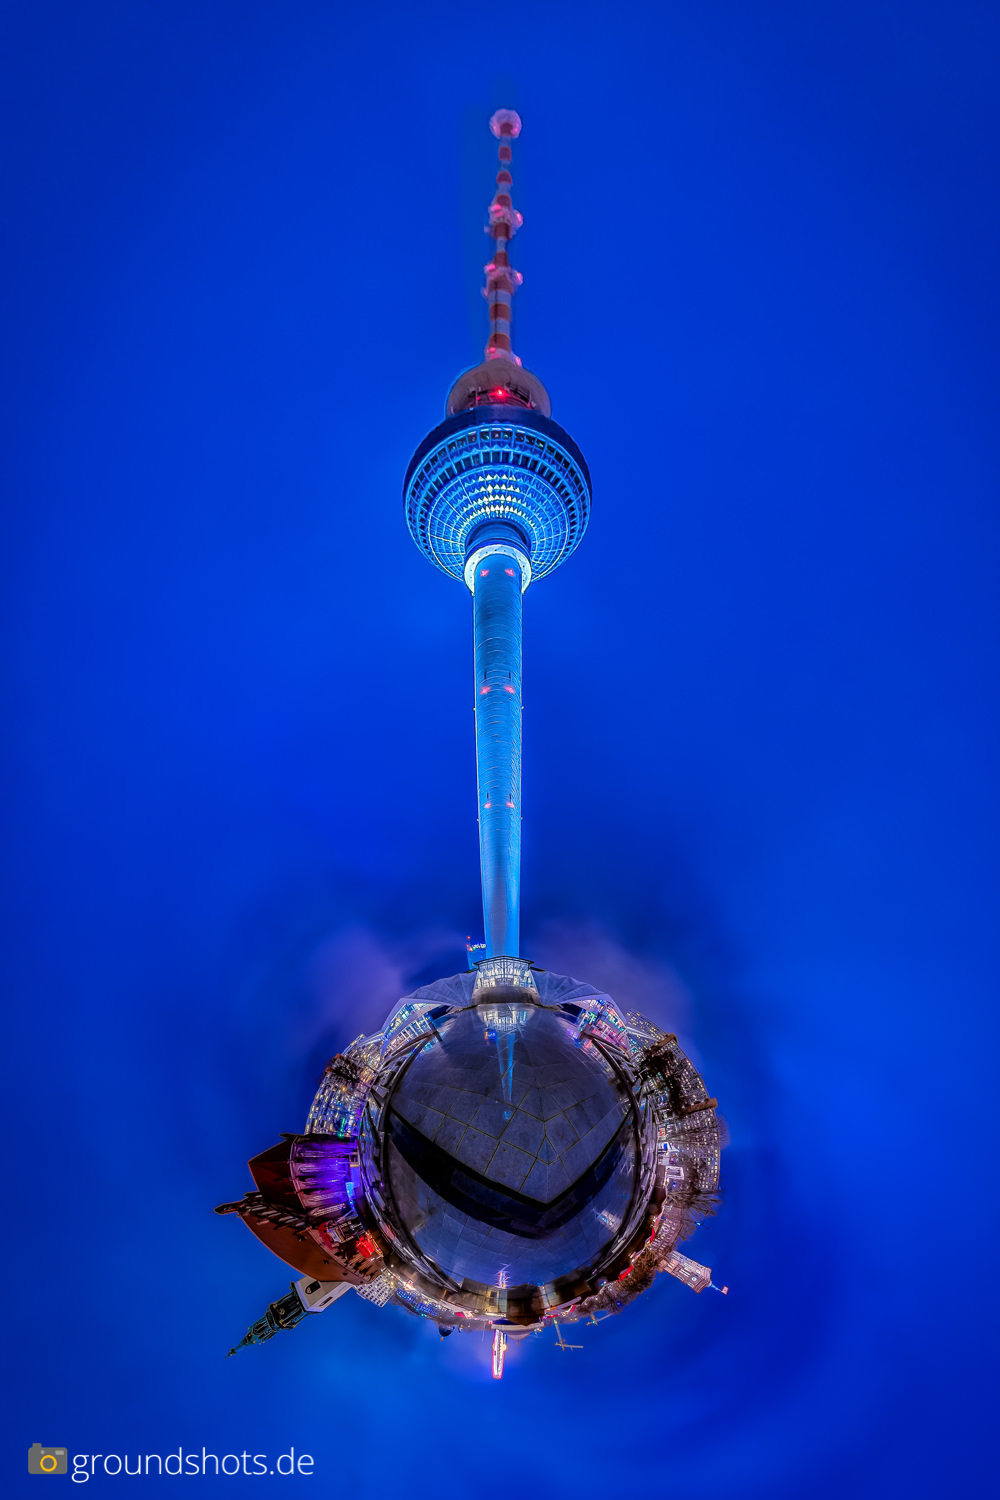 Little Planet Fernsehturm Berlin